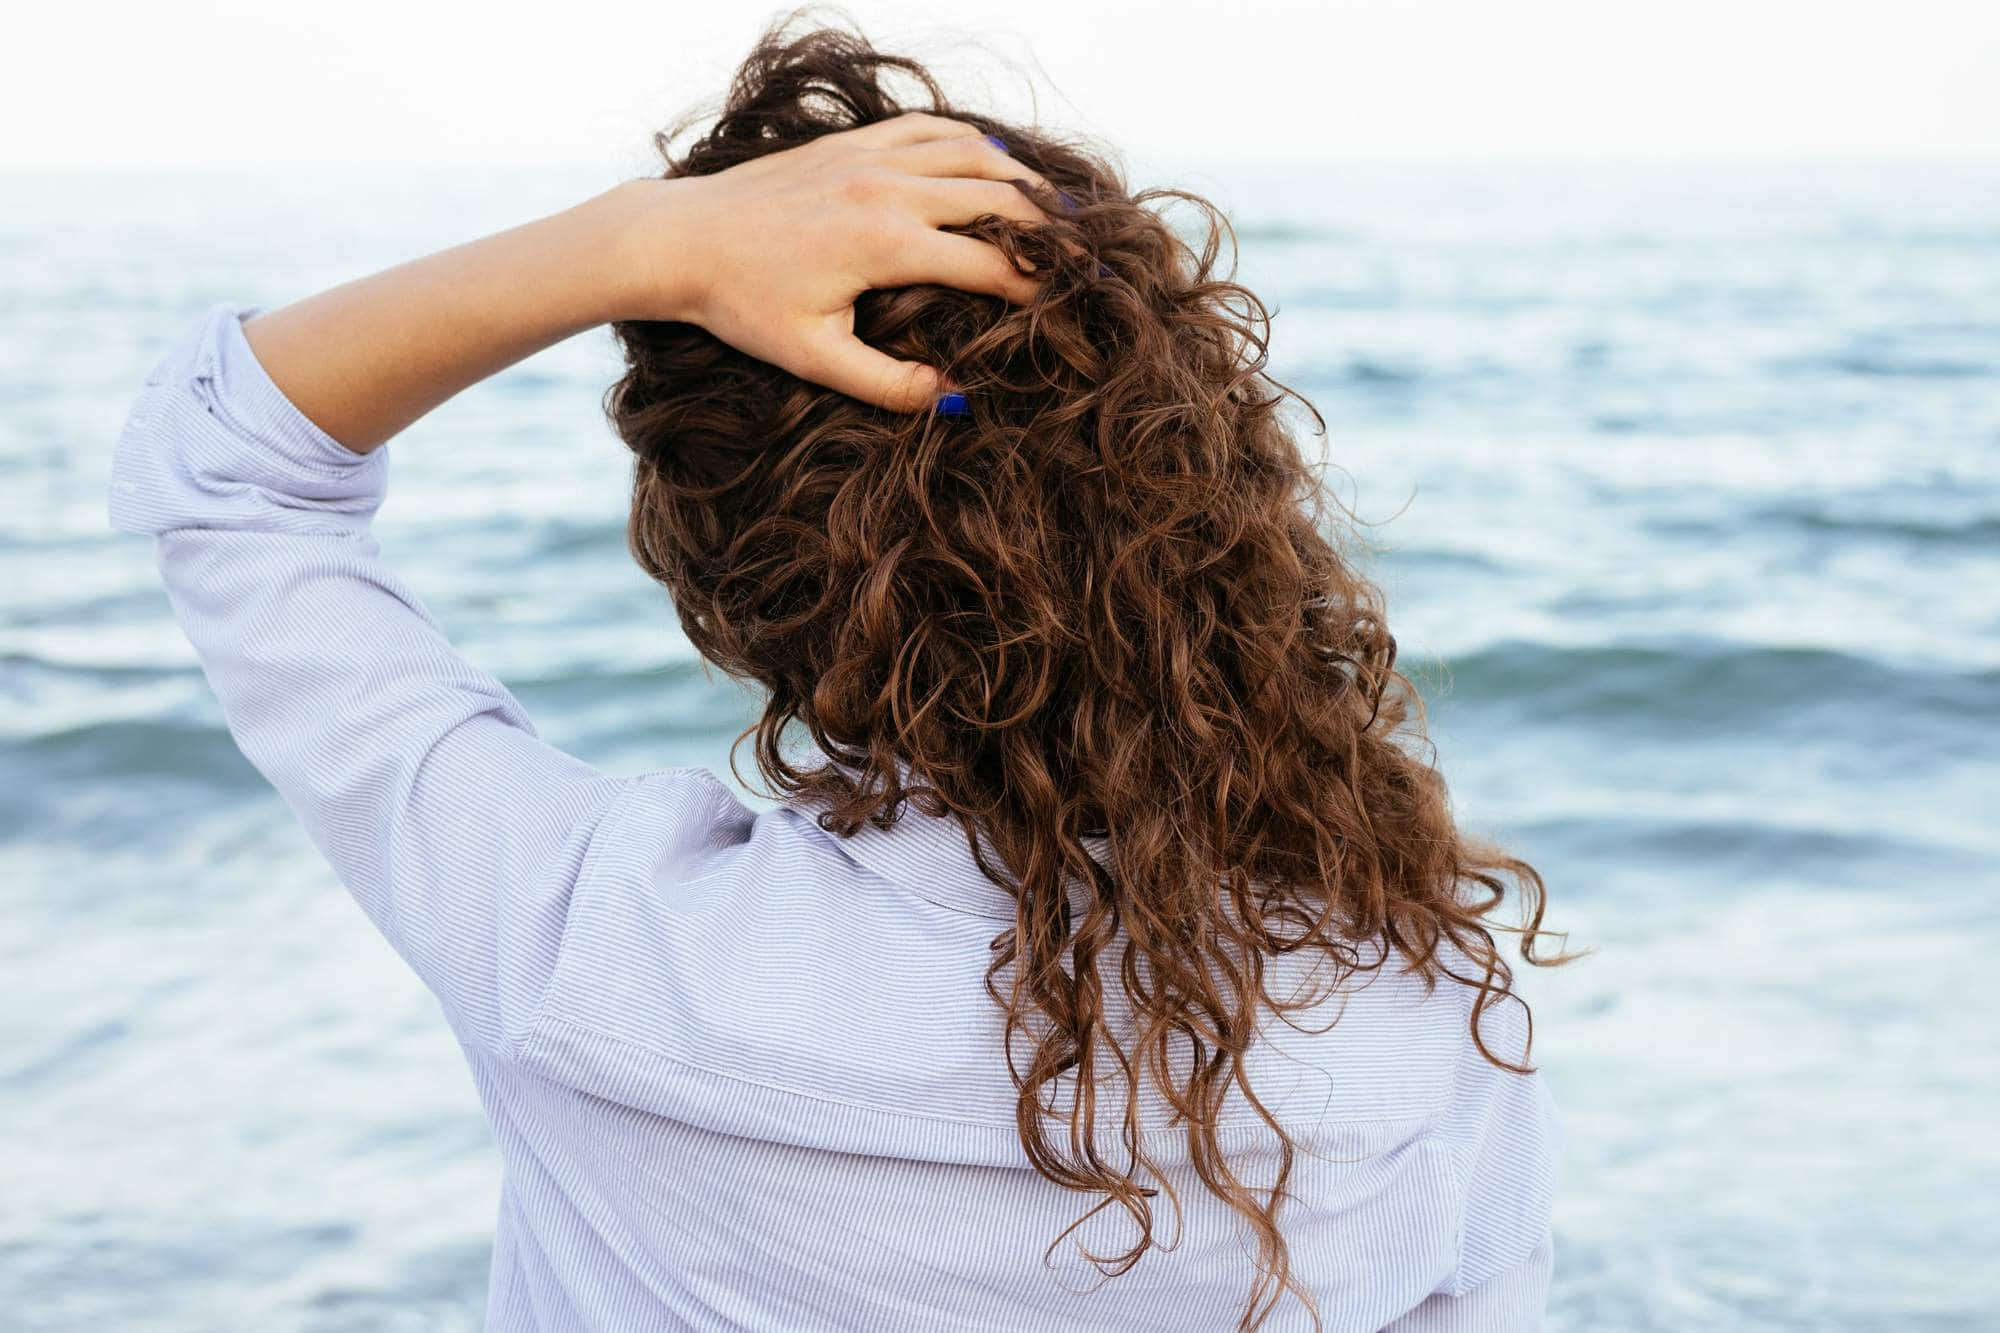 Styling Cream For Wavy Hair: Best Hair Gel For Thick Hair: 4 Top Picks For Styling Your